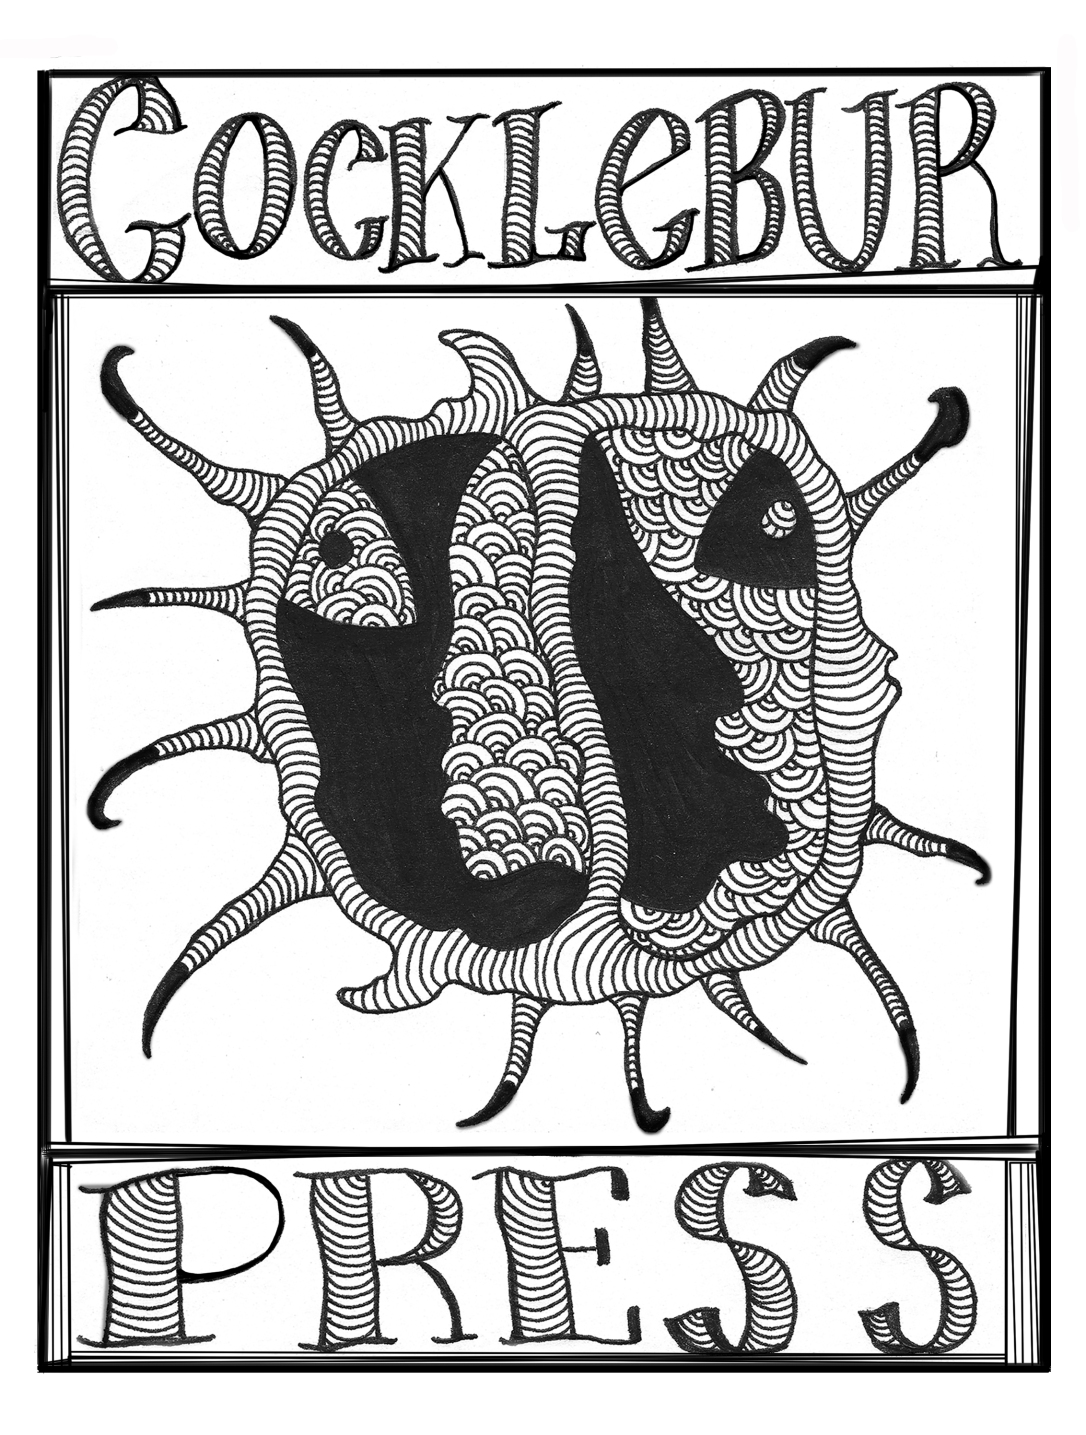 Cocklebur Press logo by A.S. Coomer, edited by Trent Clayton